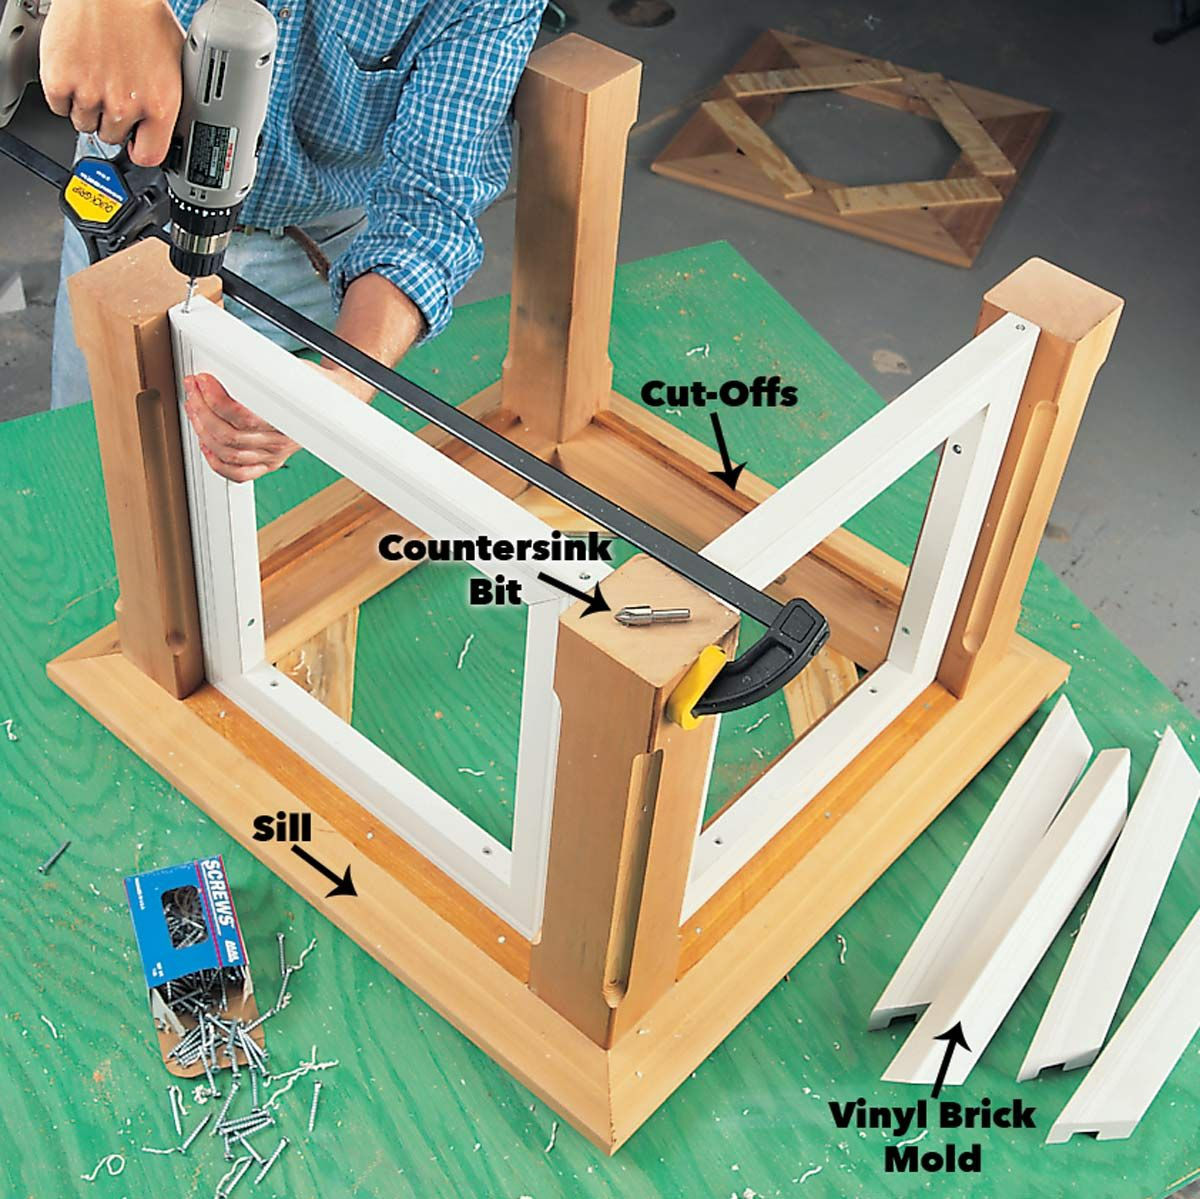 How To Build A Cupola Cupolas Shed Plans Brick Molding